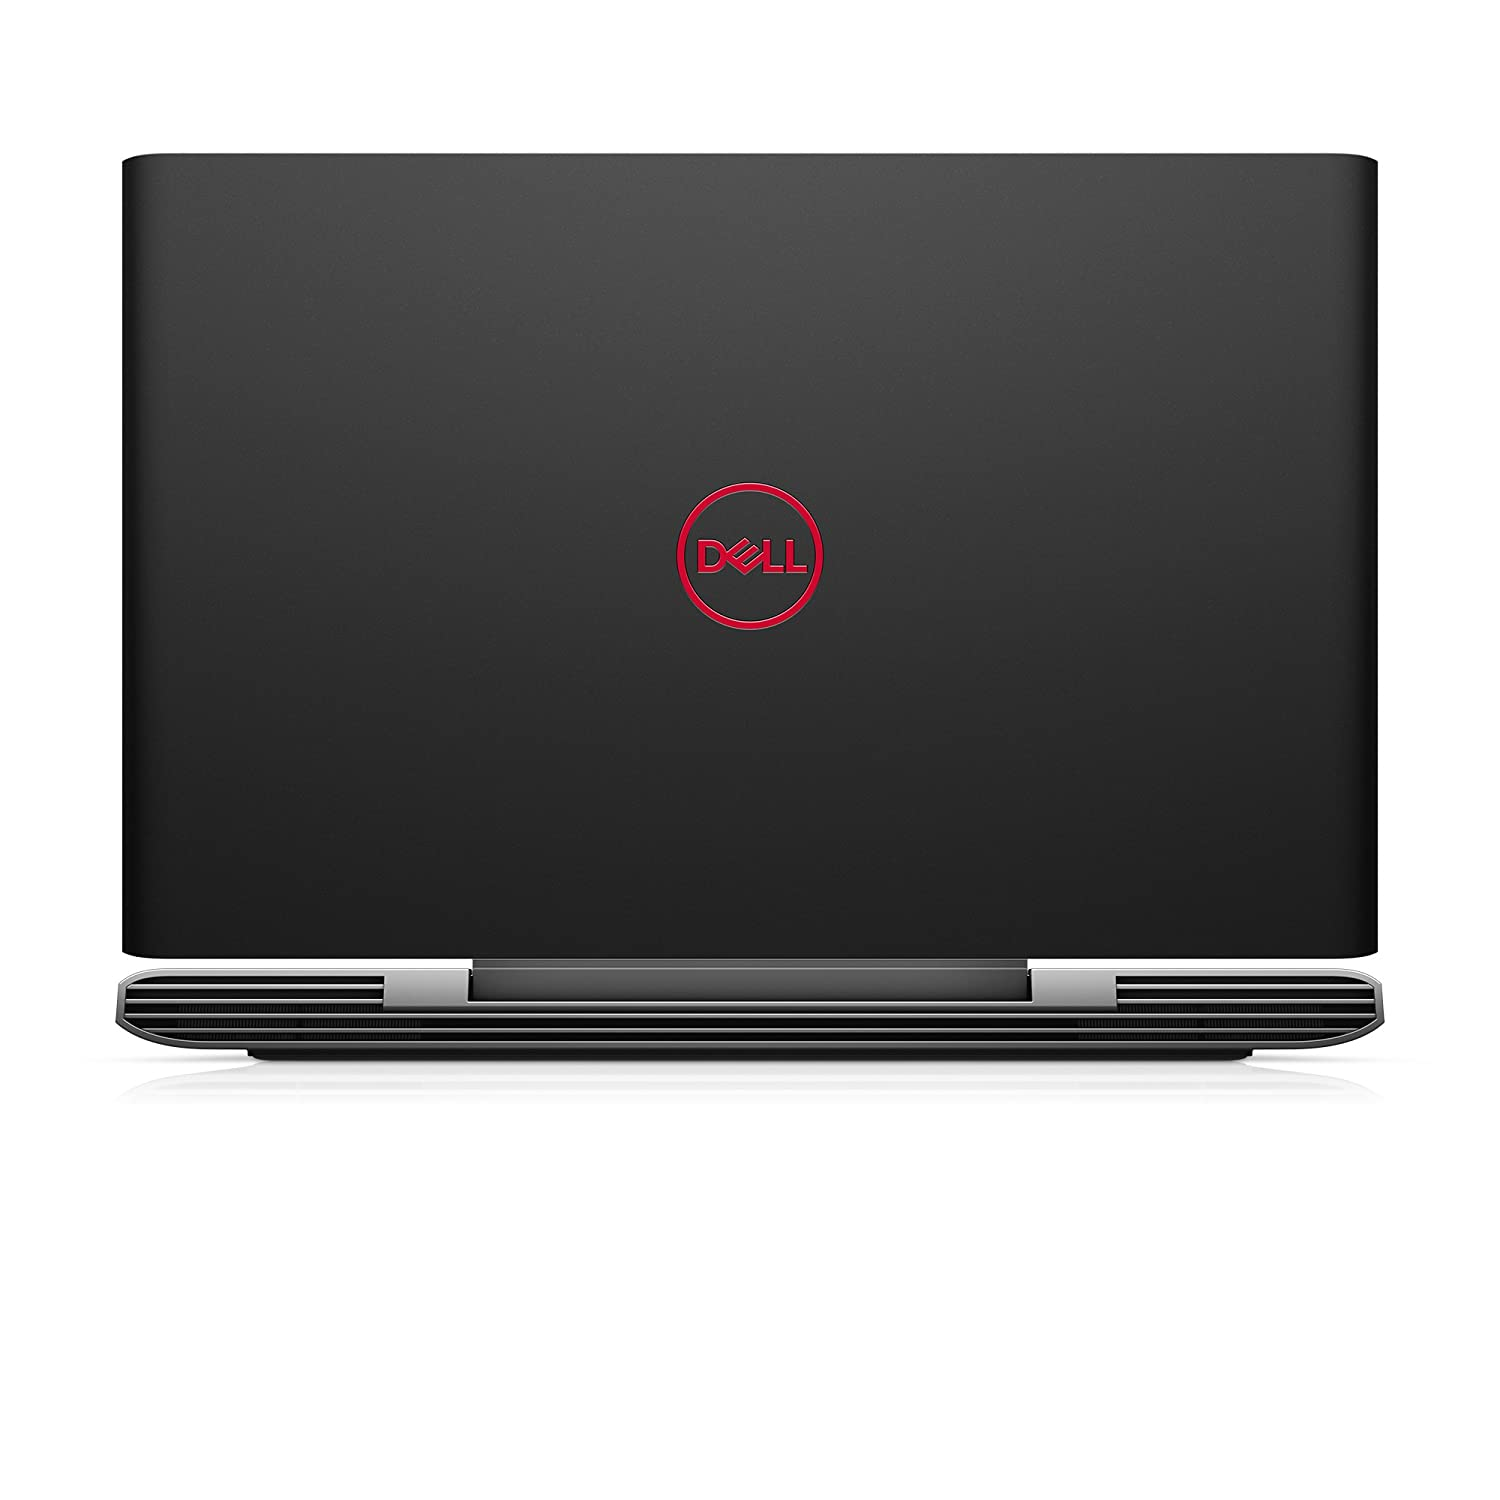 Dell Gaming Laptop G5587-5859BLK-PUS G5 - 15 6